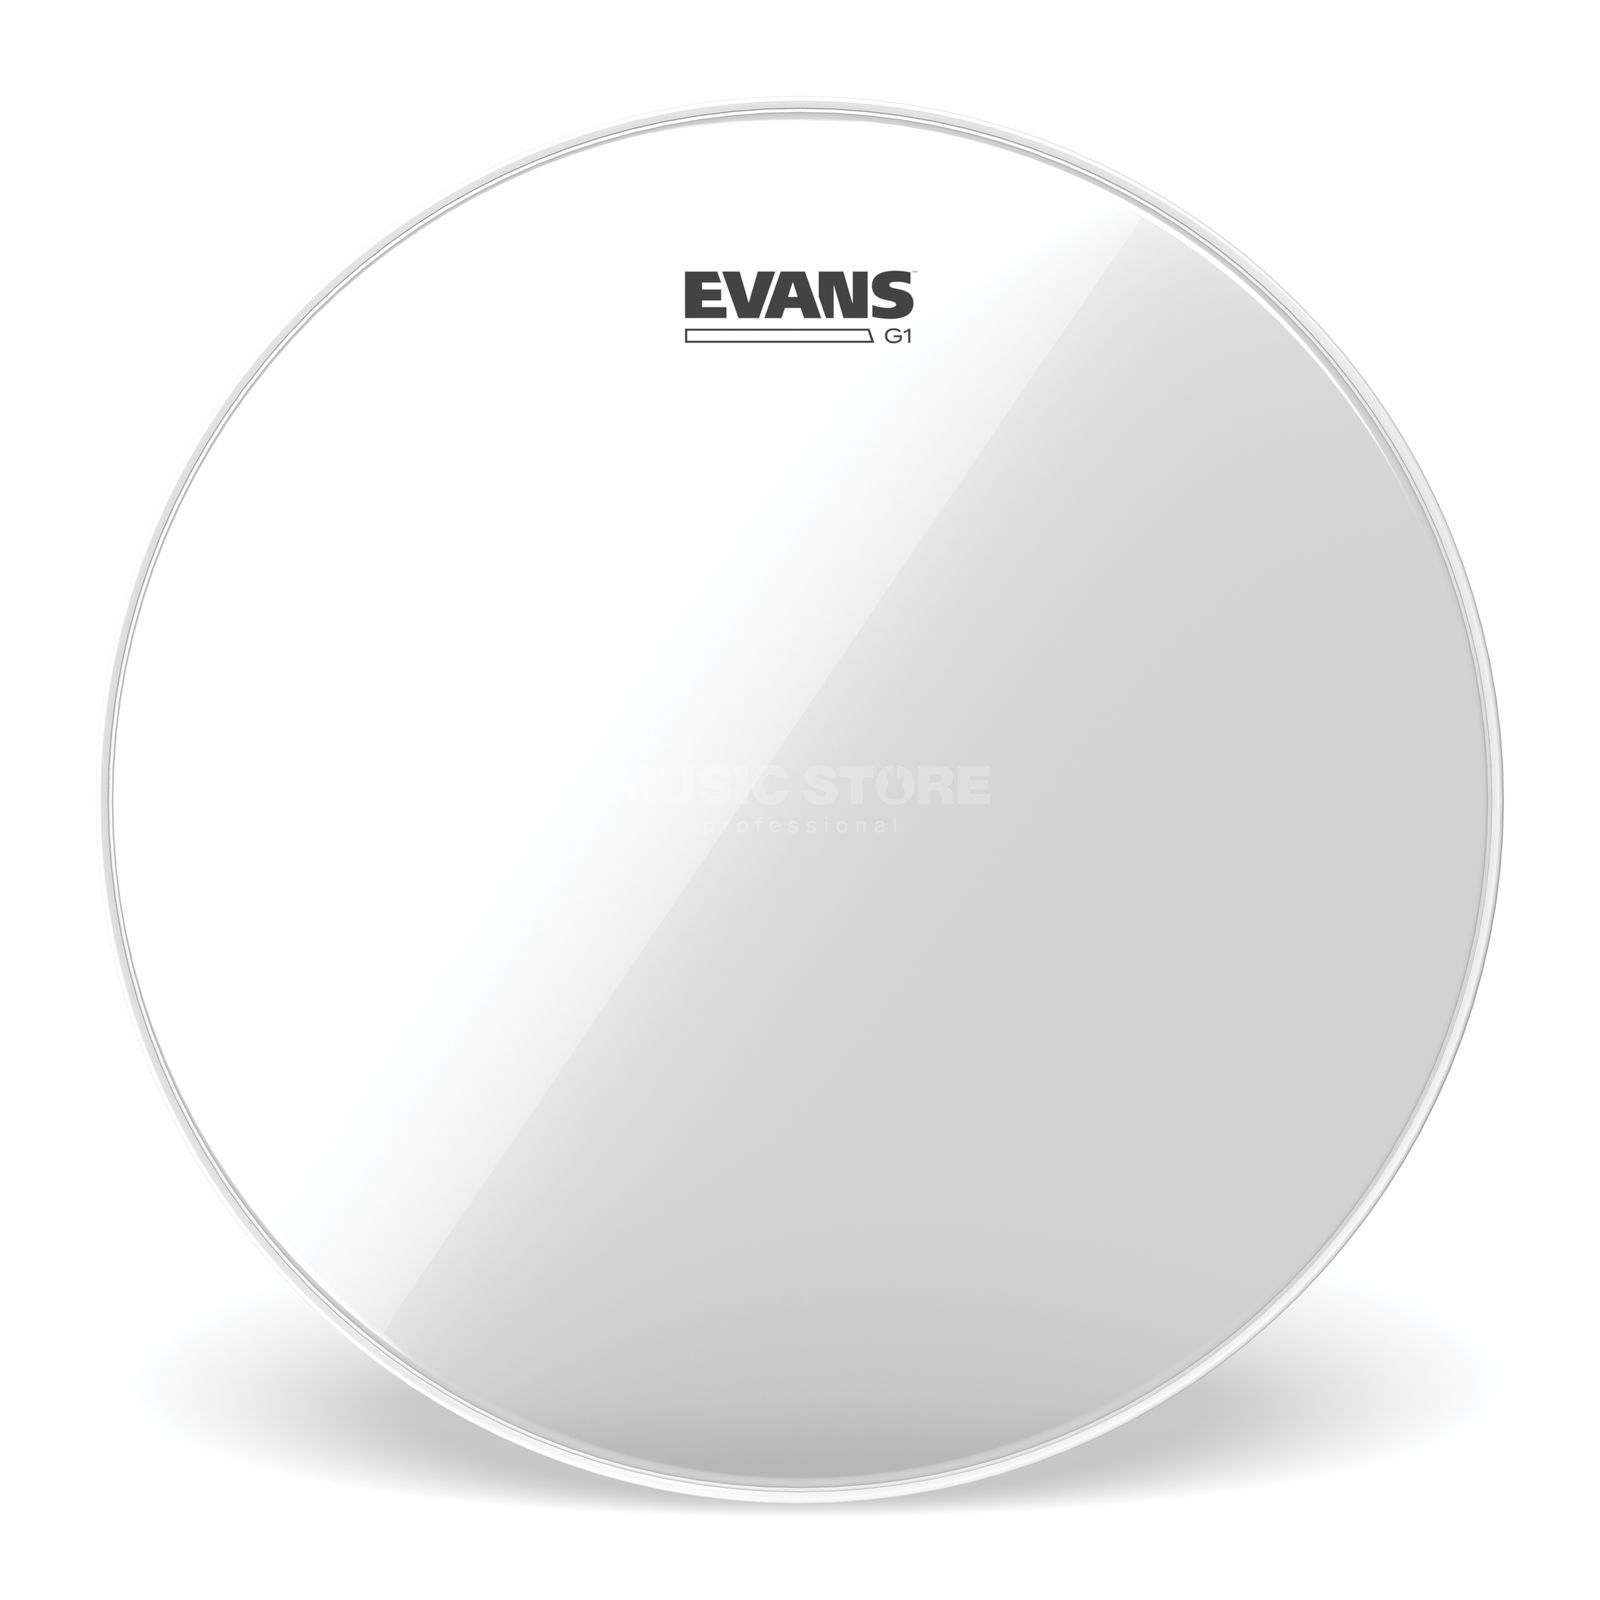 "Evans G1 Clear 8"", TT08G1, Tom Batter Product Image"